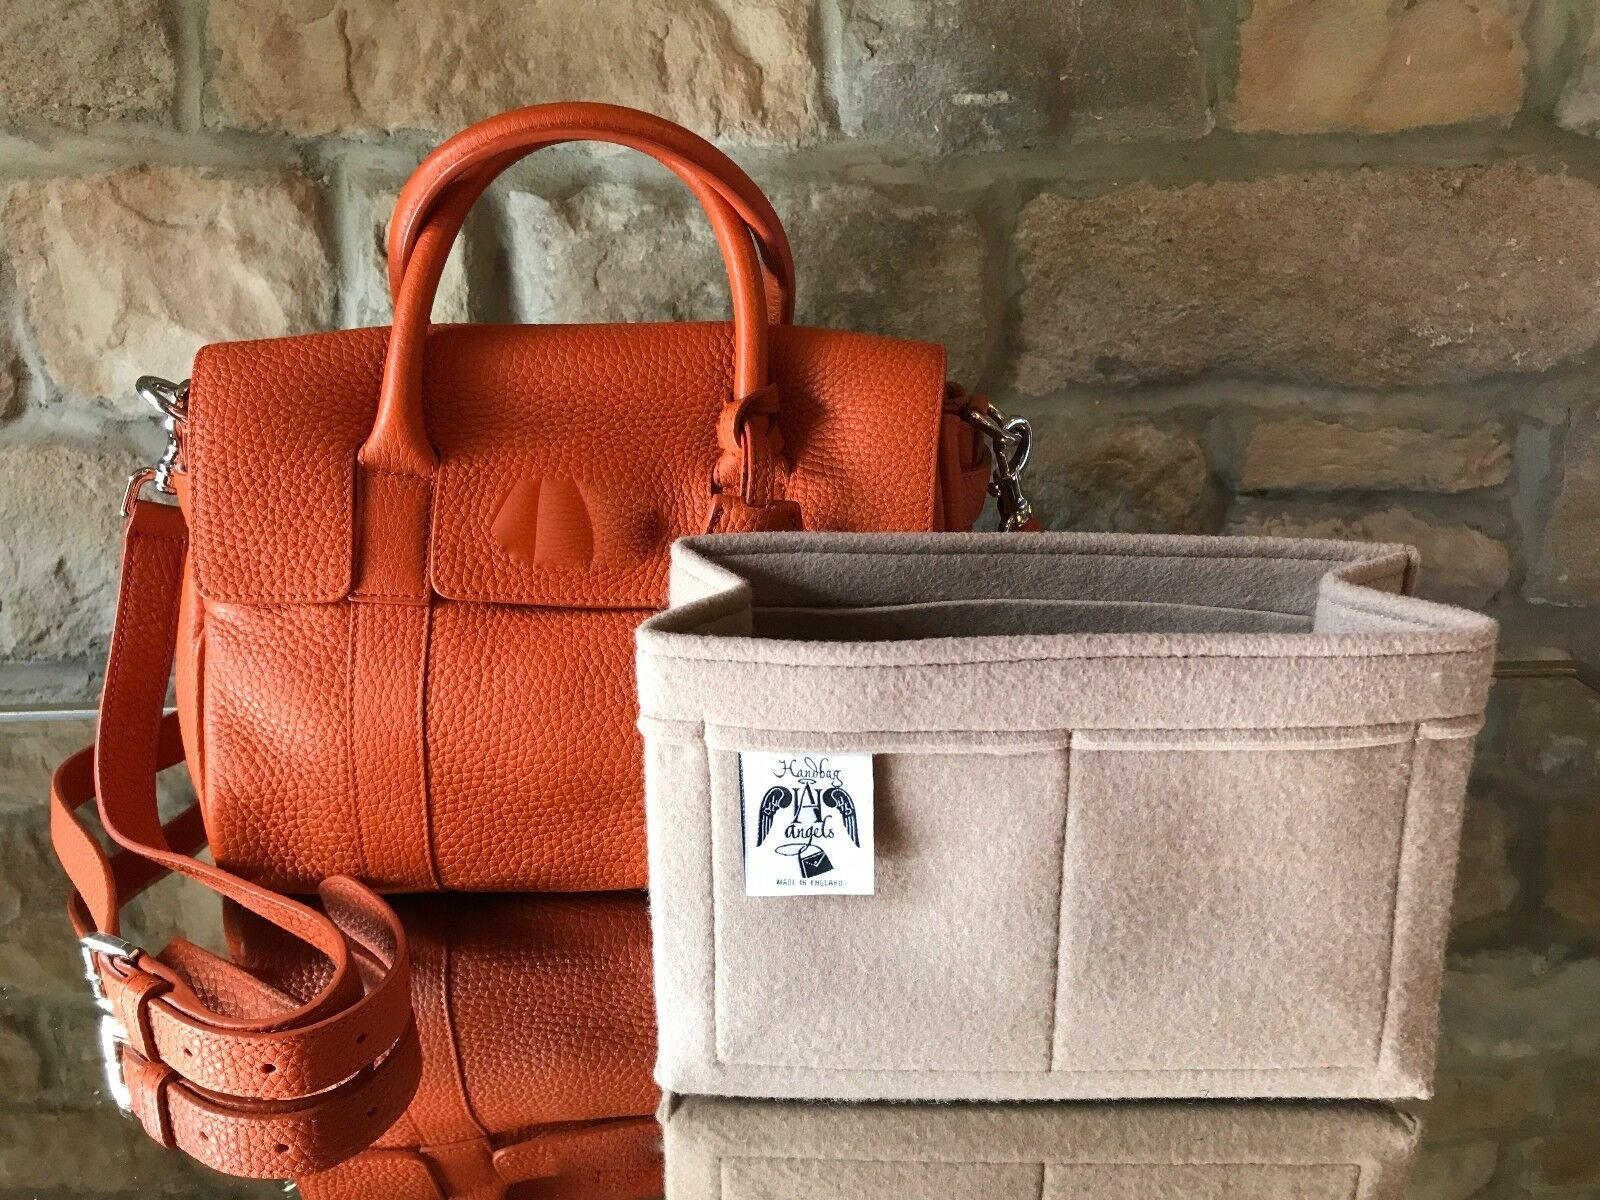 Classic Small Bayswater Satchel Insert Liner Bag Organiser By Handbag Angels Uk 1 Of 12free Shipping See More